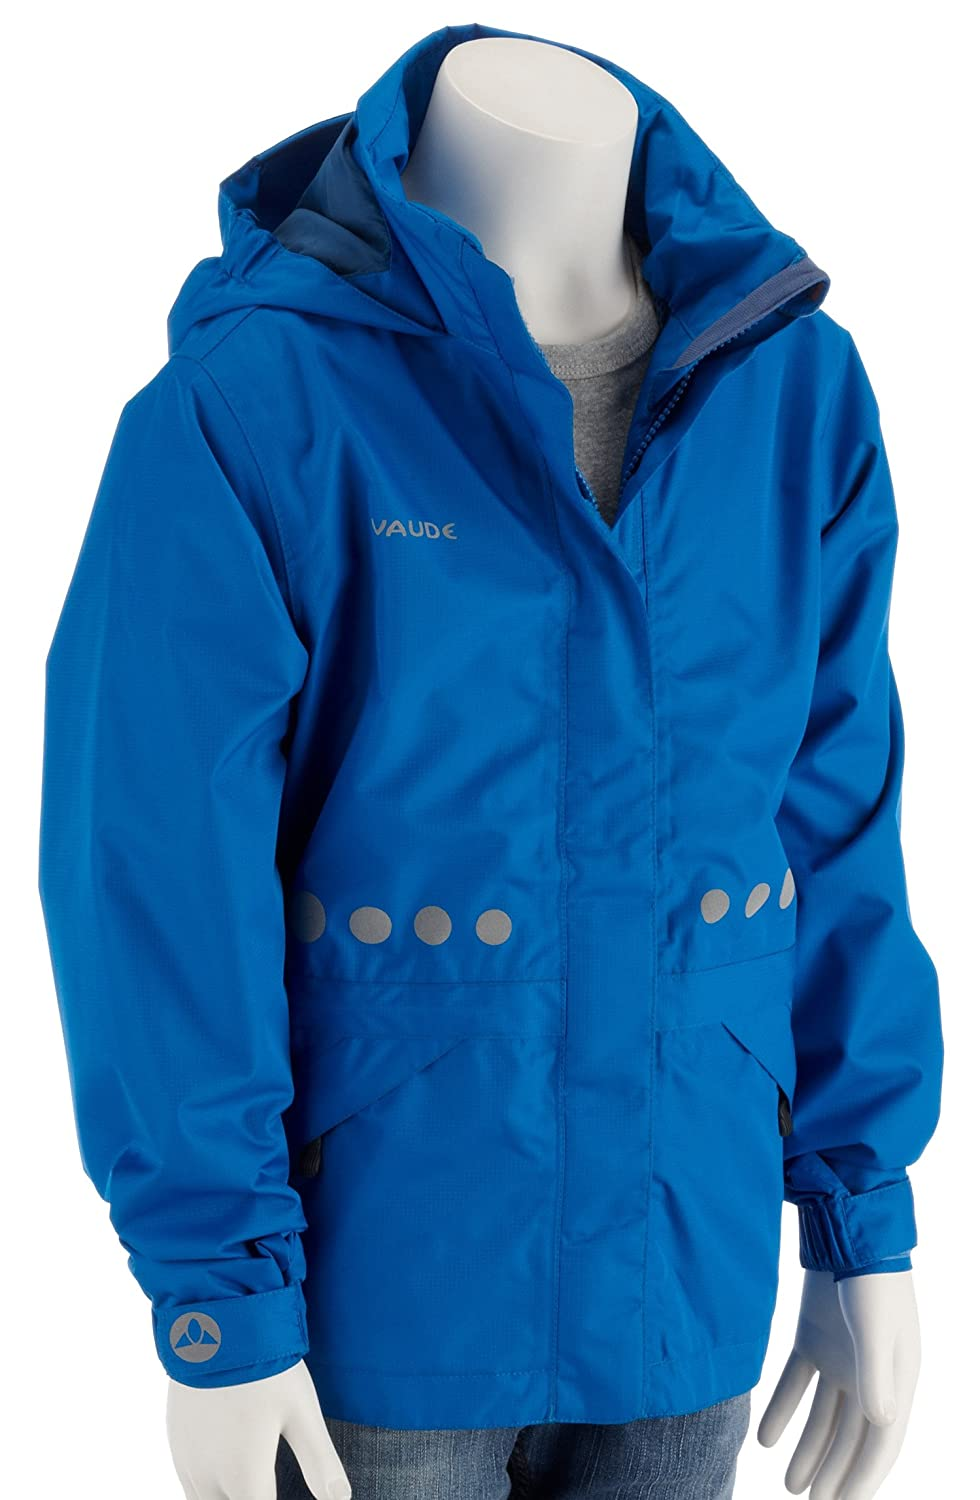 VAUDE Kinder Jacke Kids Escape Jacket IV kaufen